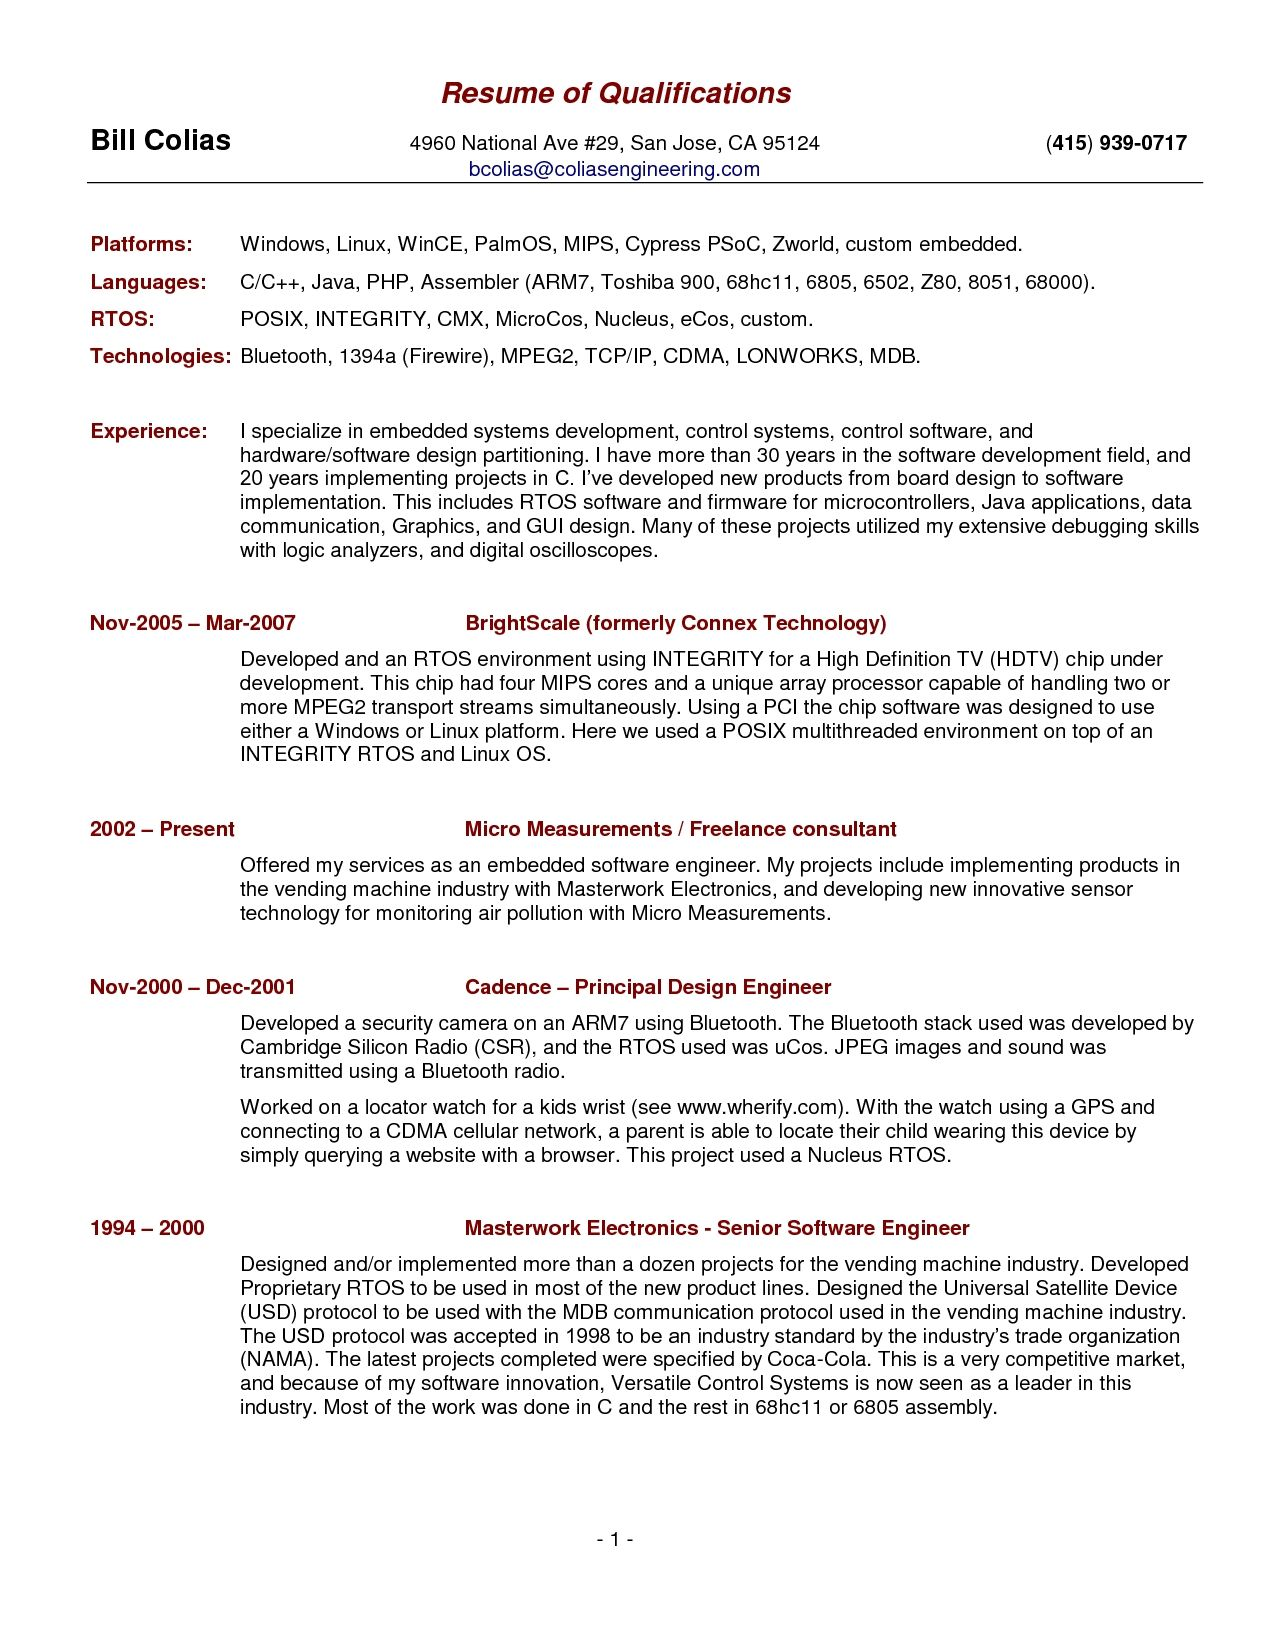 Marvelous Qualifications For A Resume Examples 7f8ea3a2a New Resume Skills  Resume Skills And Qualifications